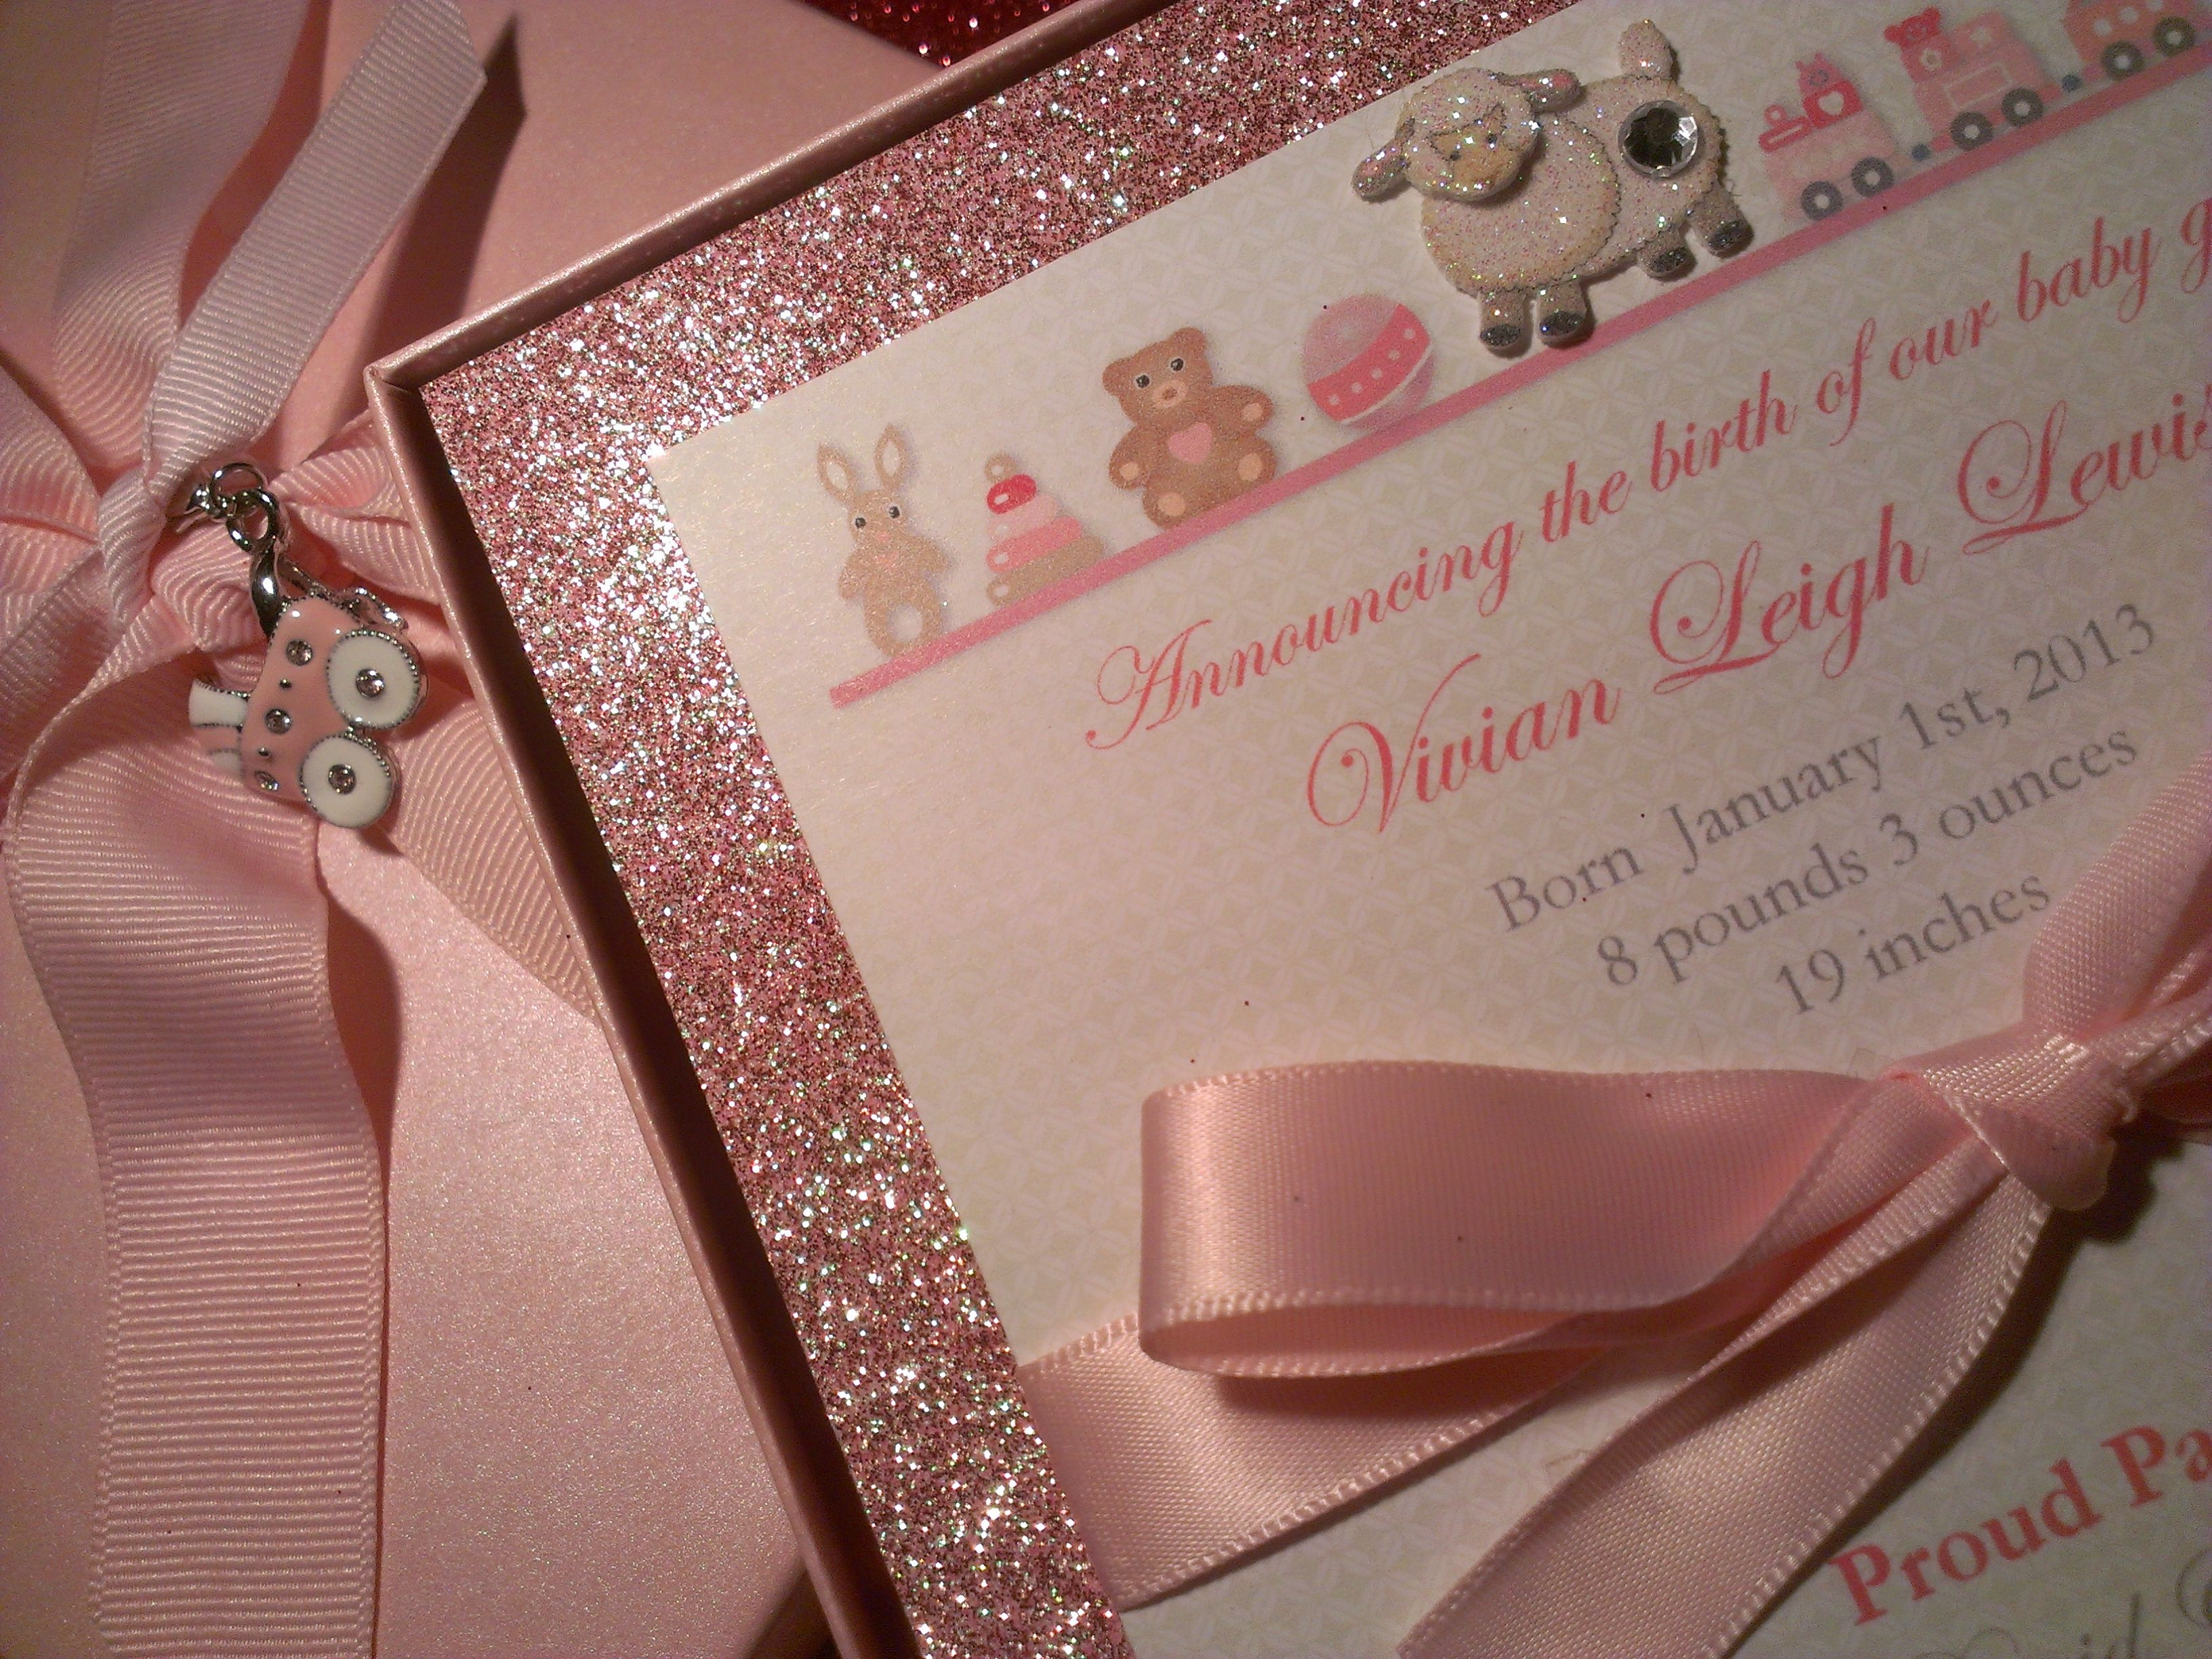 baby girl announcement comes with beautiful sparkle pink backing